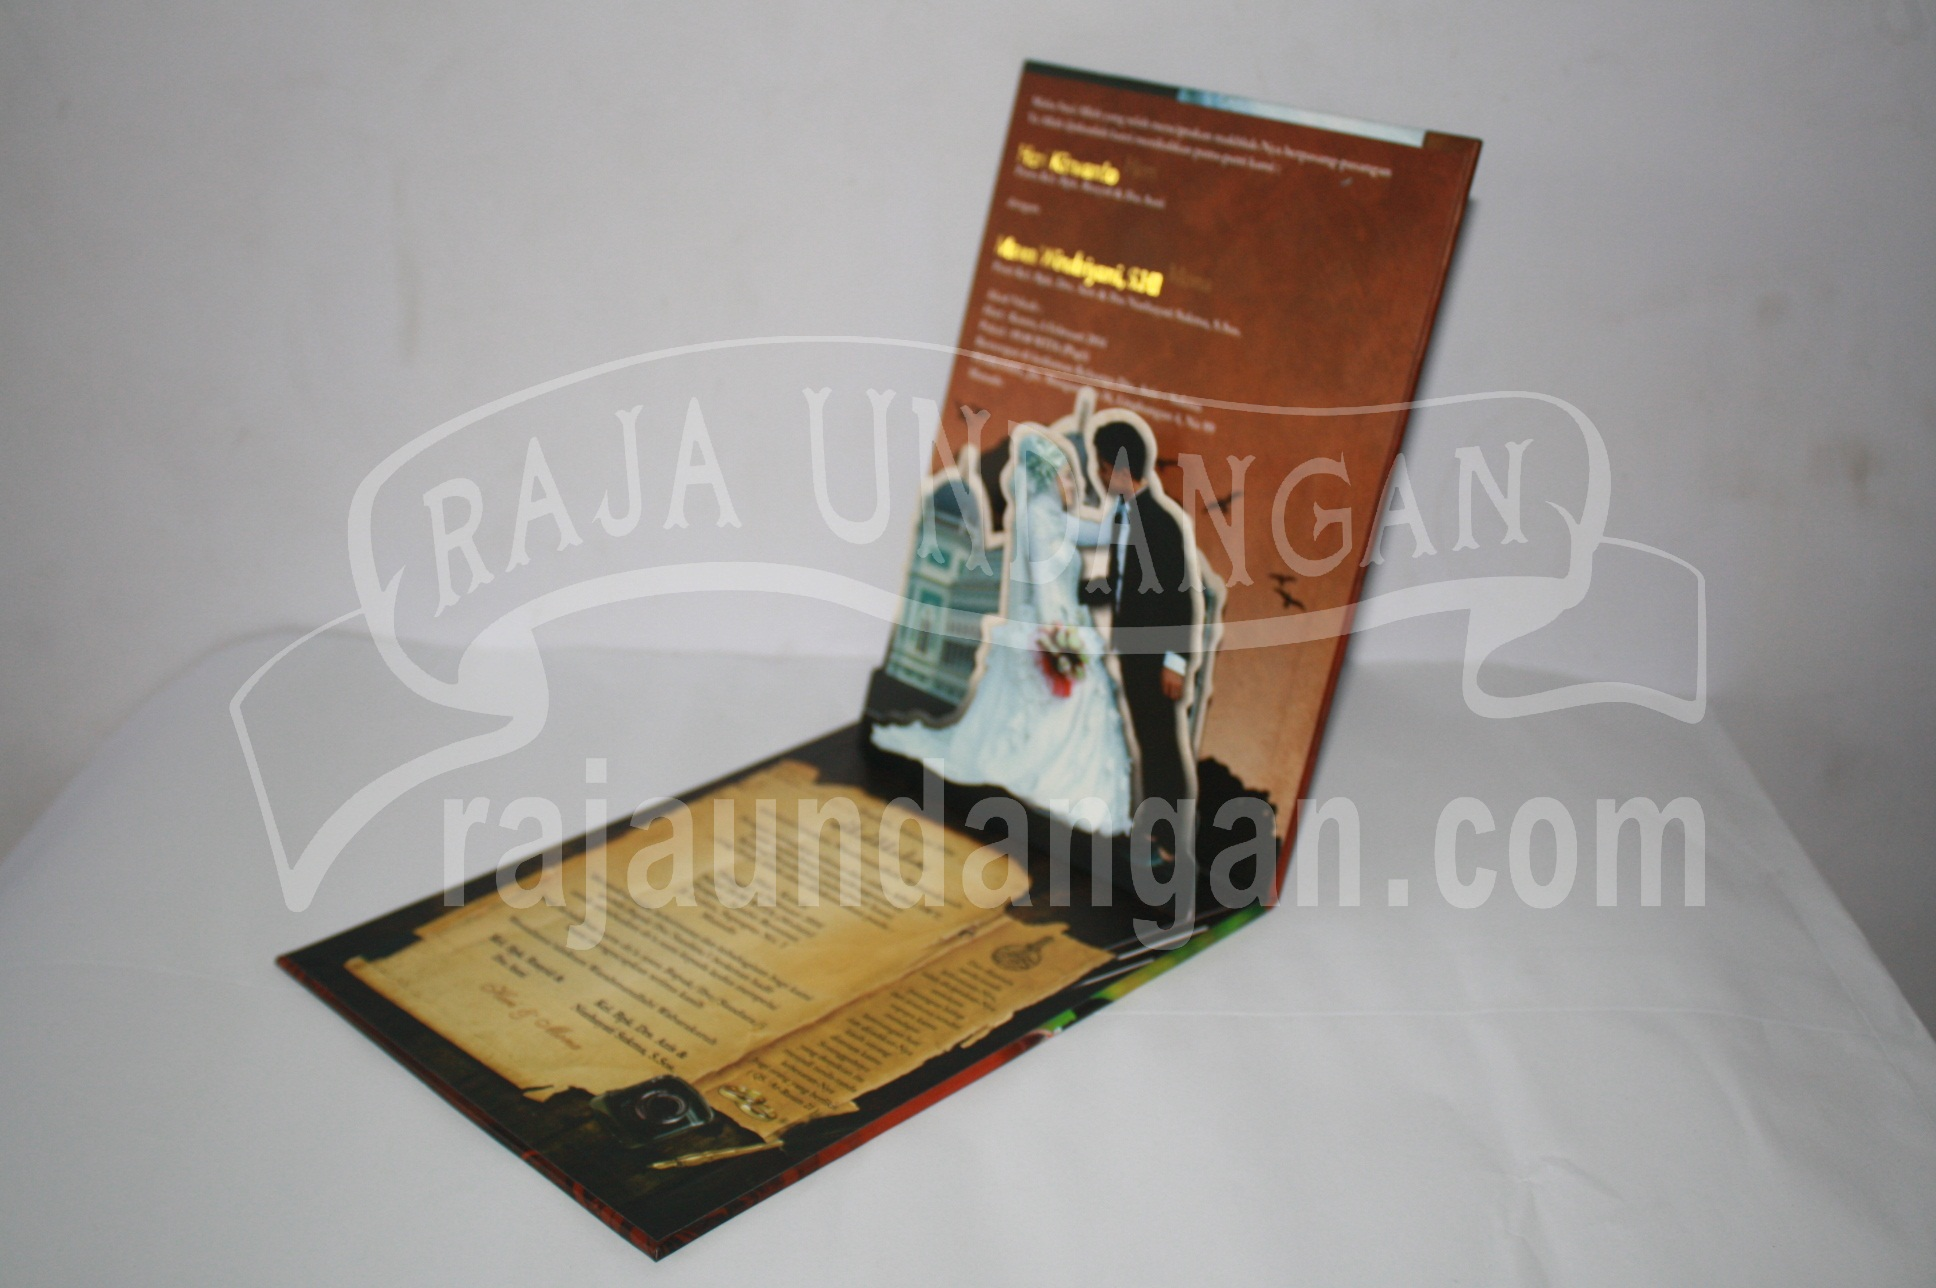 Undangan Pernikahan Hardcover Pop Up Heri dan Mona EDC 43 3 - Percetakan Wedding Invitations Unik dan Eksklusif di Sumur Welut